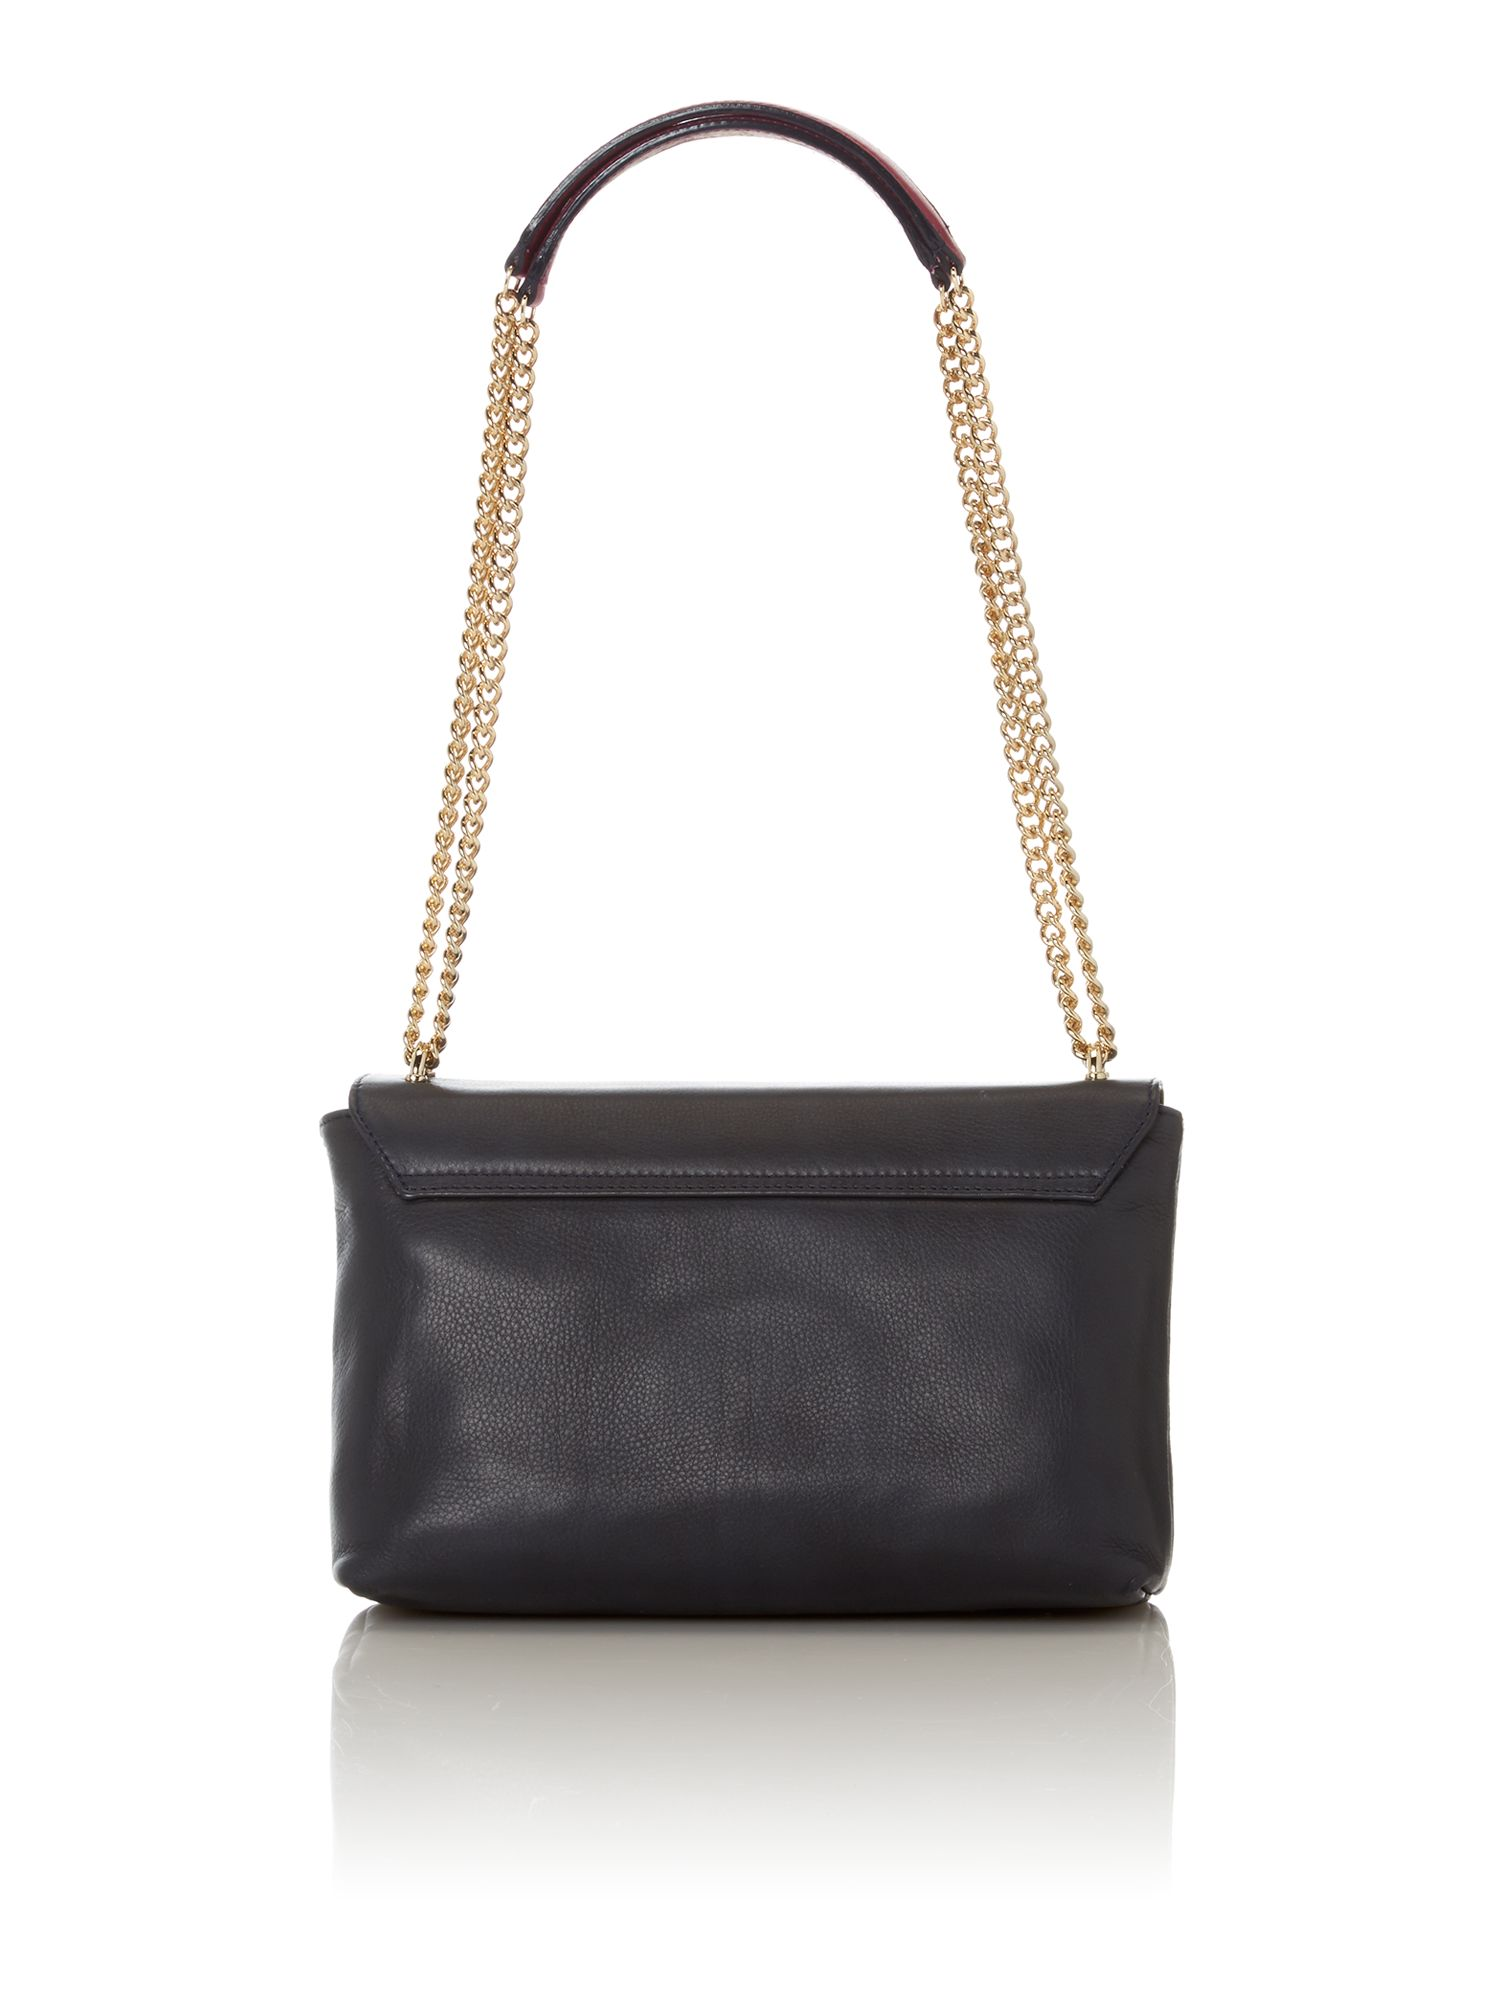 Chelsea navy shoulder bag